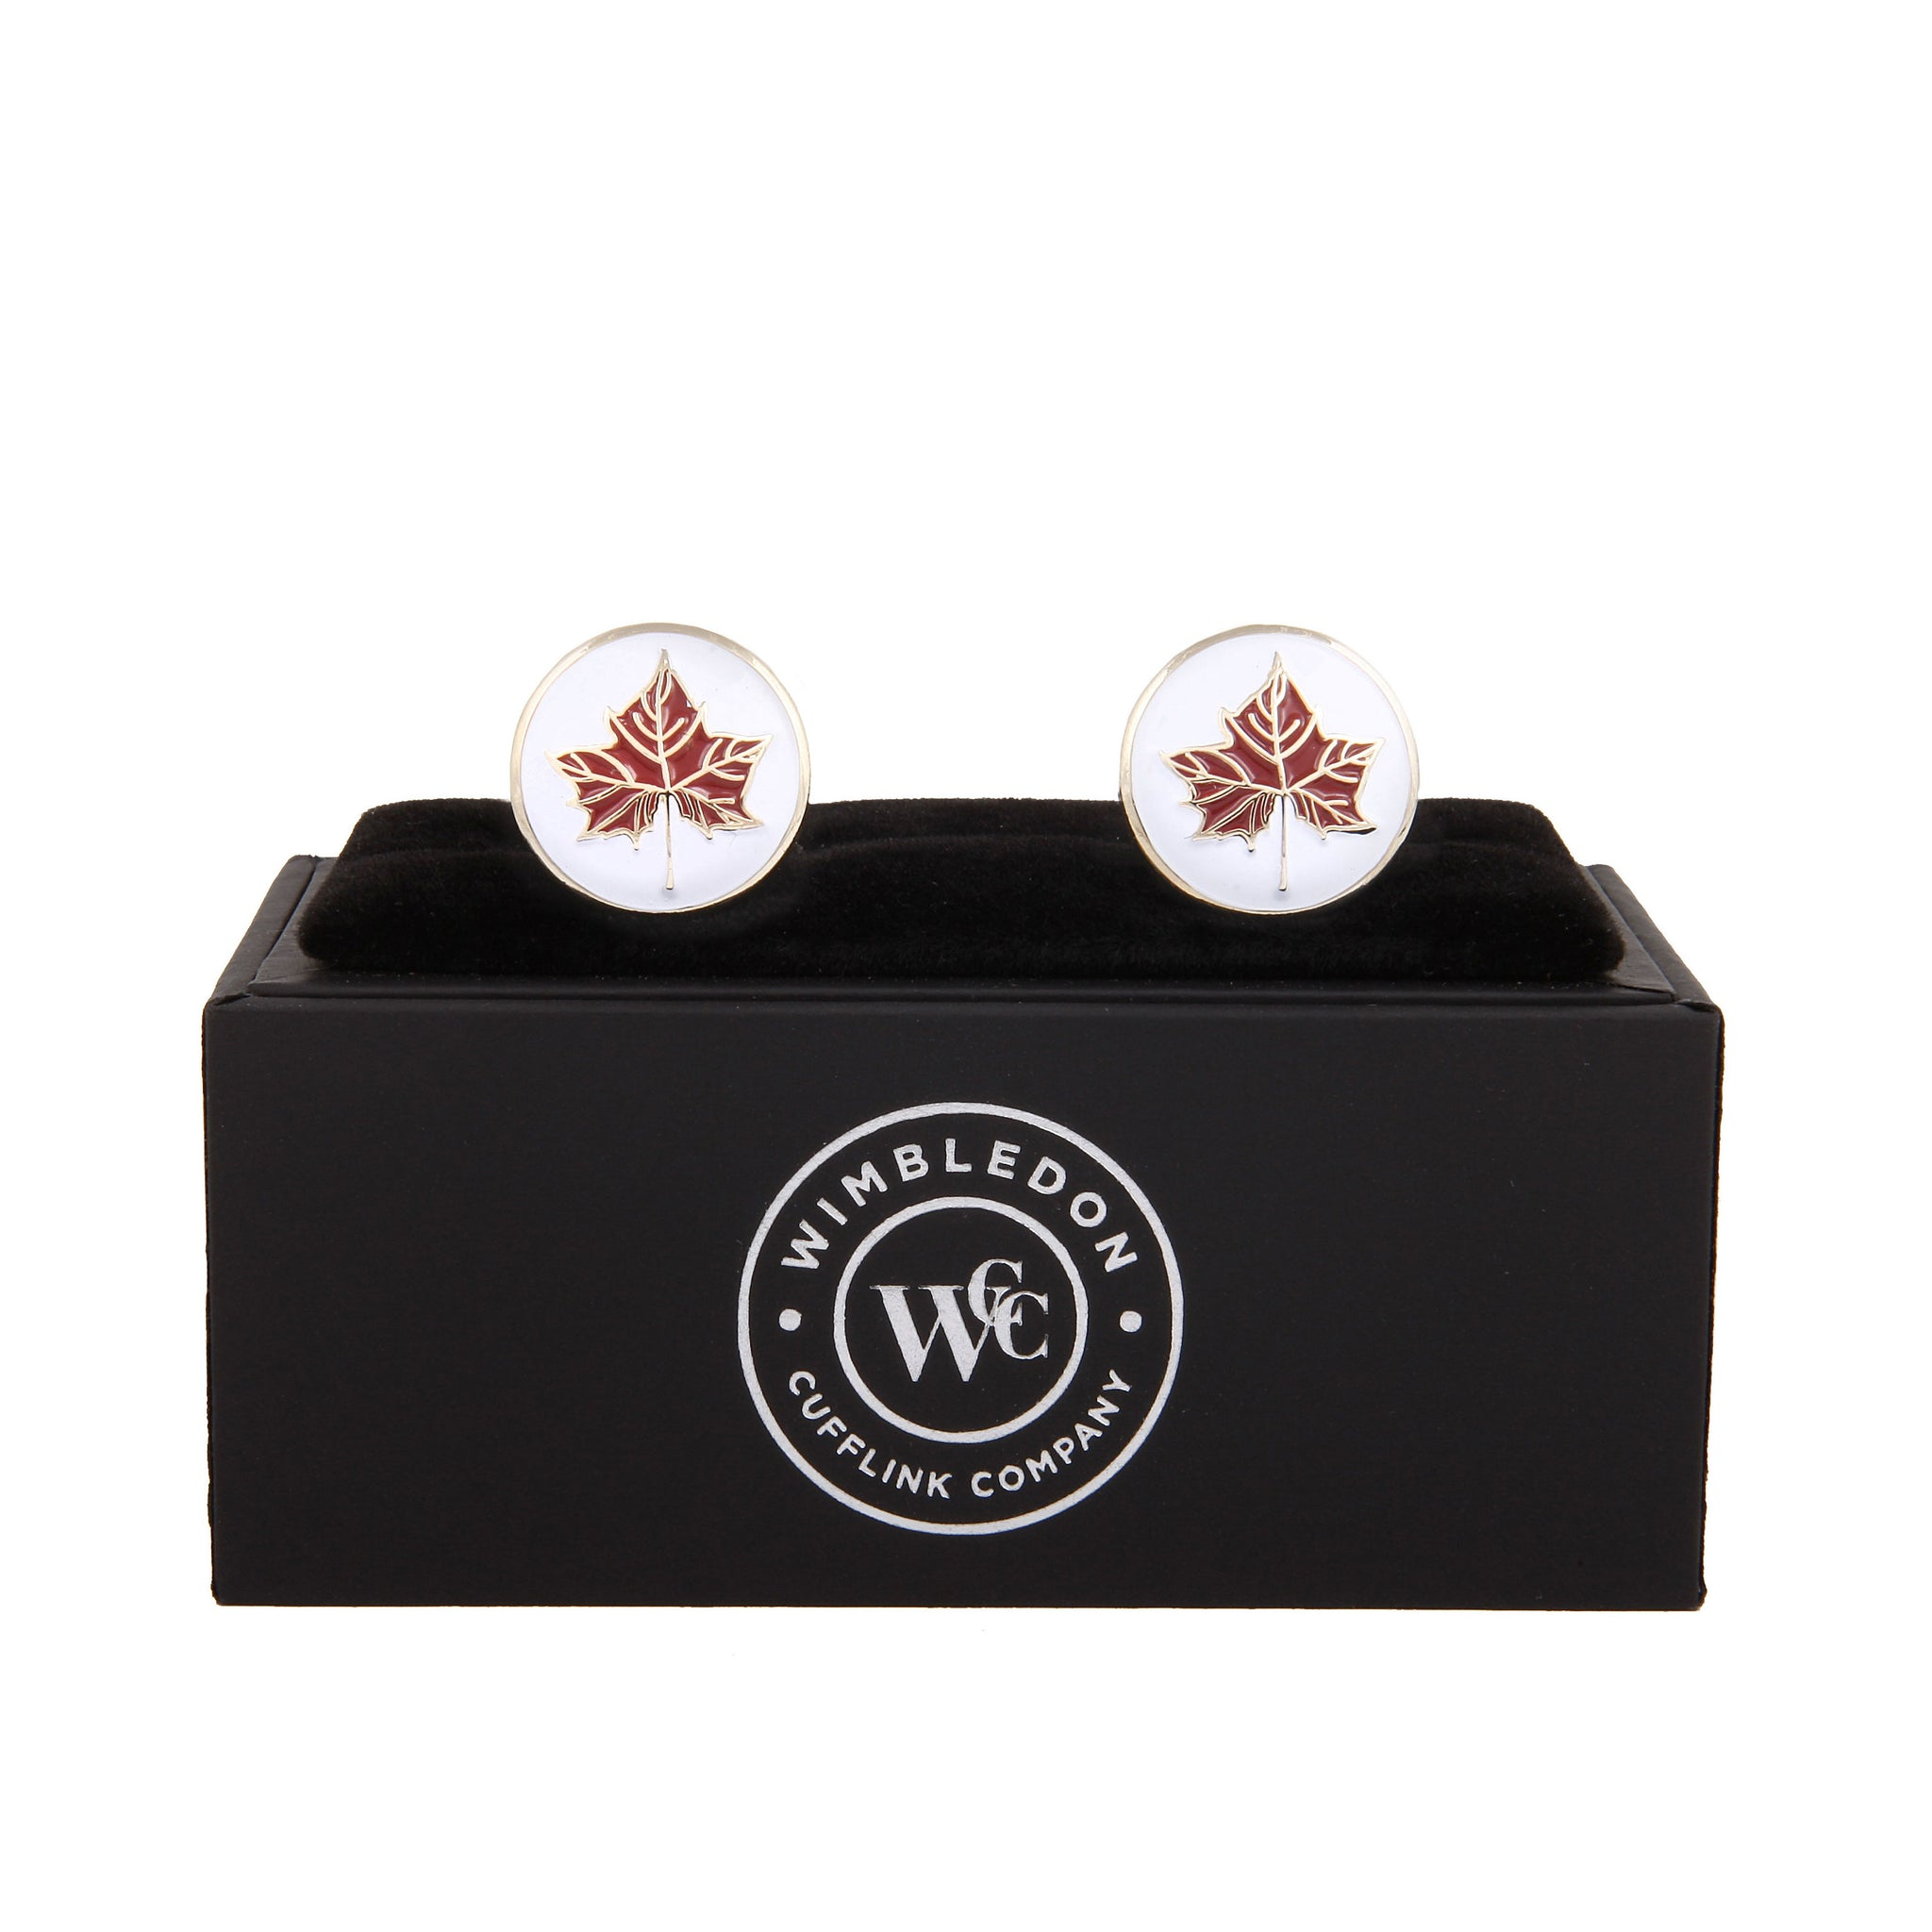 The Maple Leaf Cufflink - Wimbledon Cufflink Company